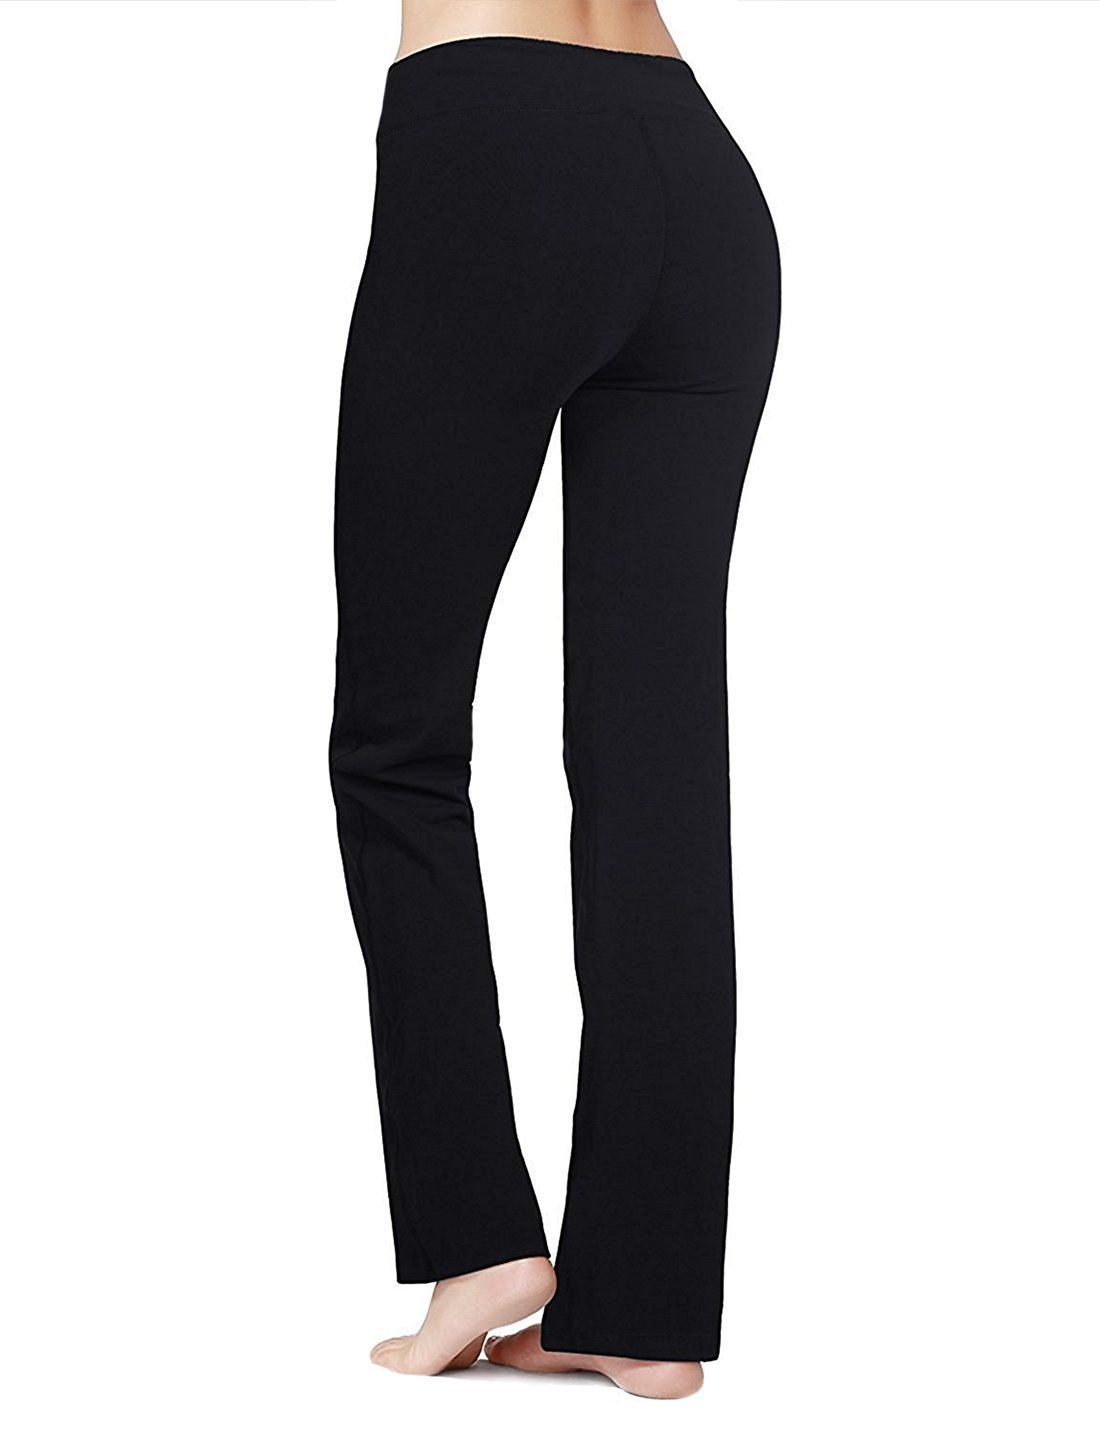 897421dff265f pregnancy workout - PhiFA Womens Bootleg Athletic High Waist Running Yoga  Pants Inner Pocket Black Size S >>> Click on the image for added  information.